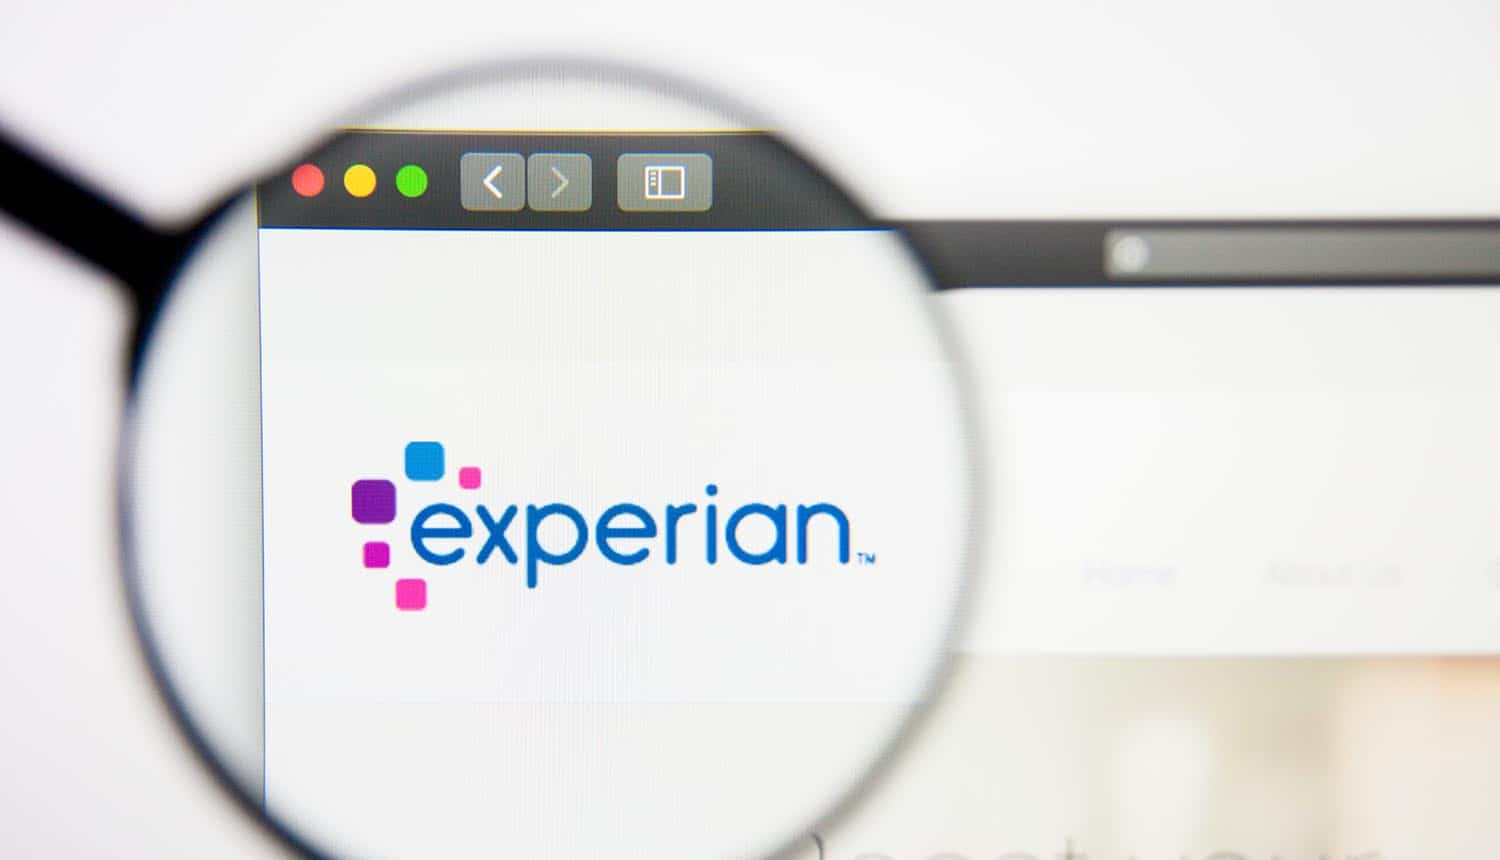 Experian website homepage showing action by UK ICO against data broking